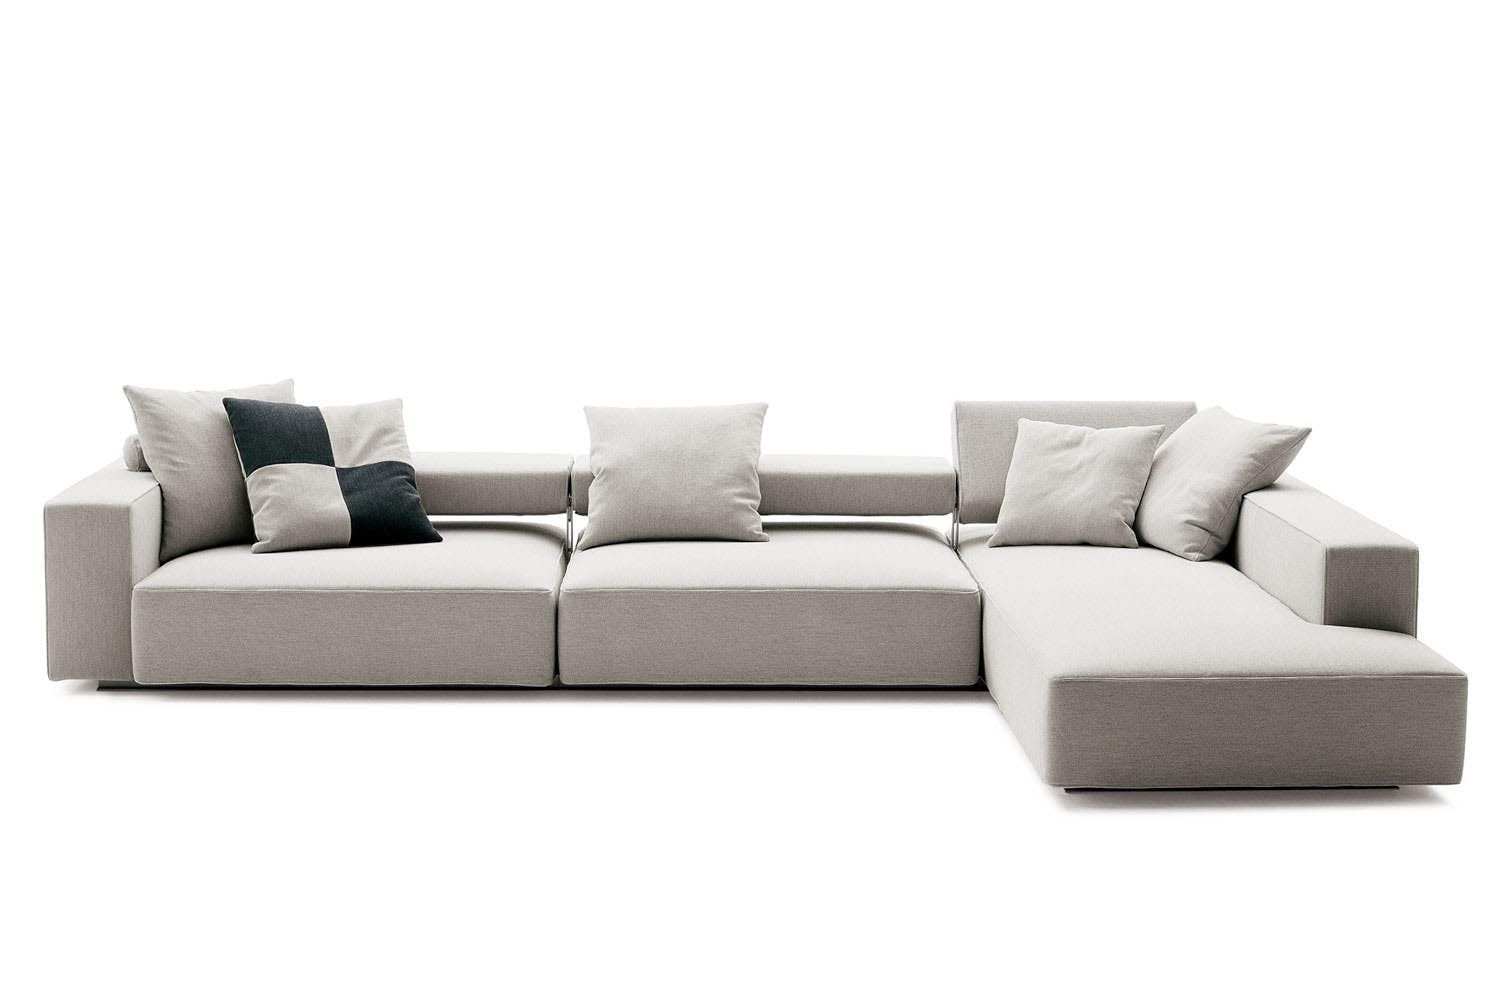 Bb Italia Sofa B Italia Bend Sofa By Patricia Urquiola At 1stdibs Thesofa